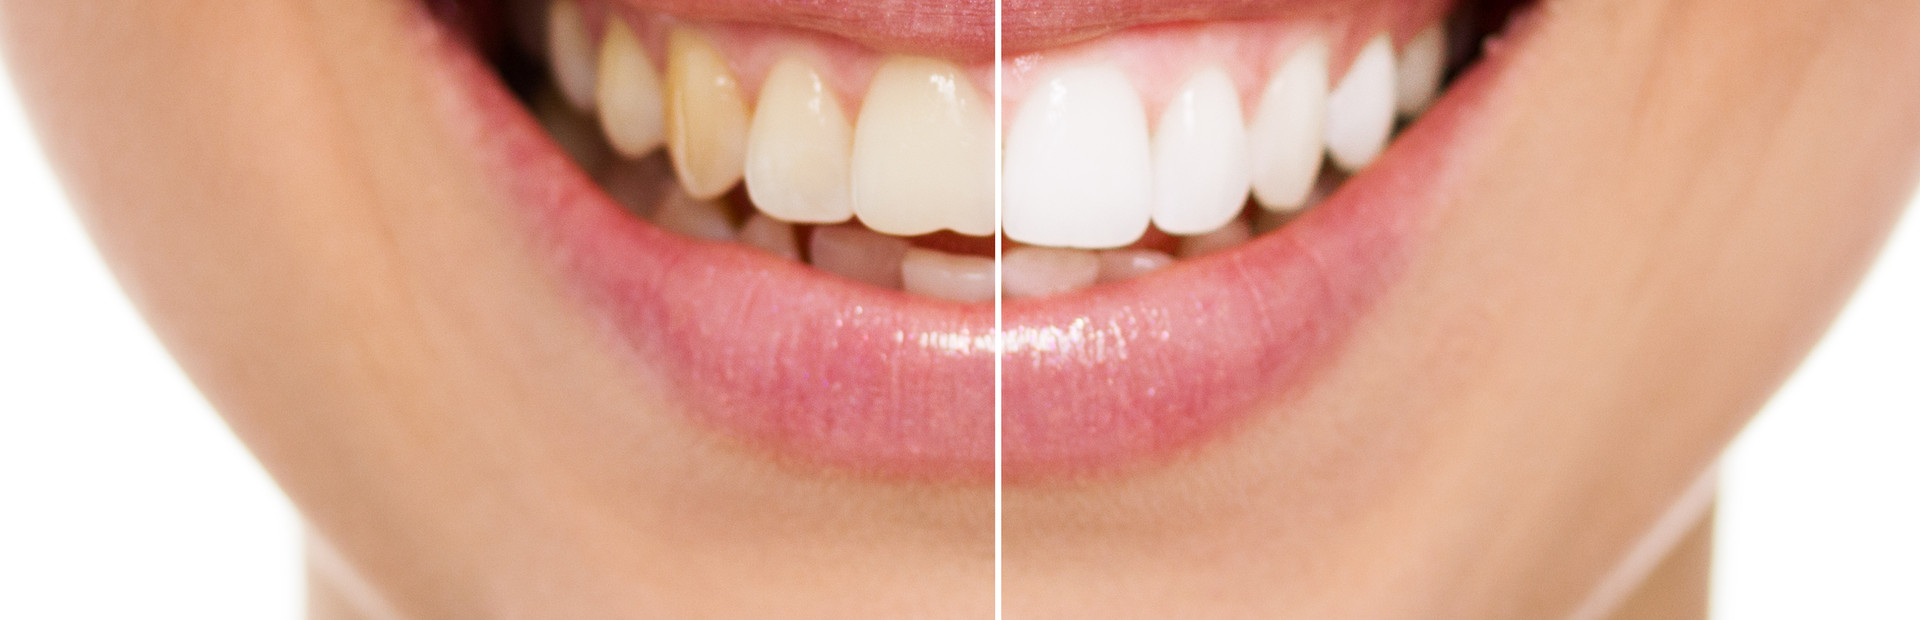 Woman before after cosmetic dentistry